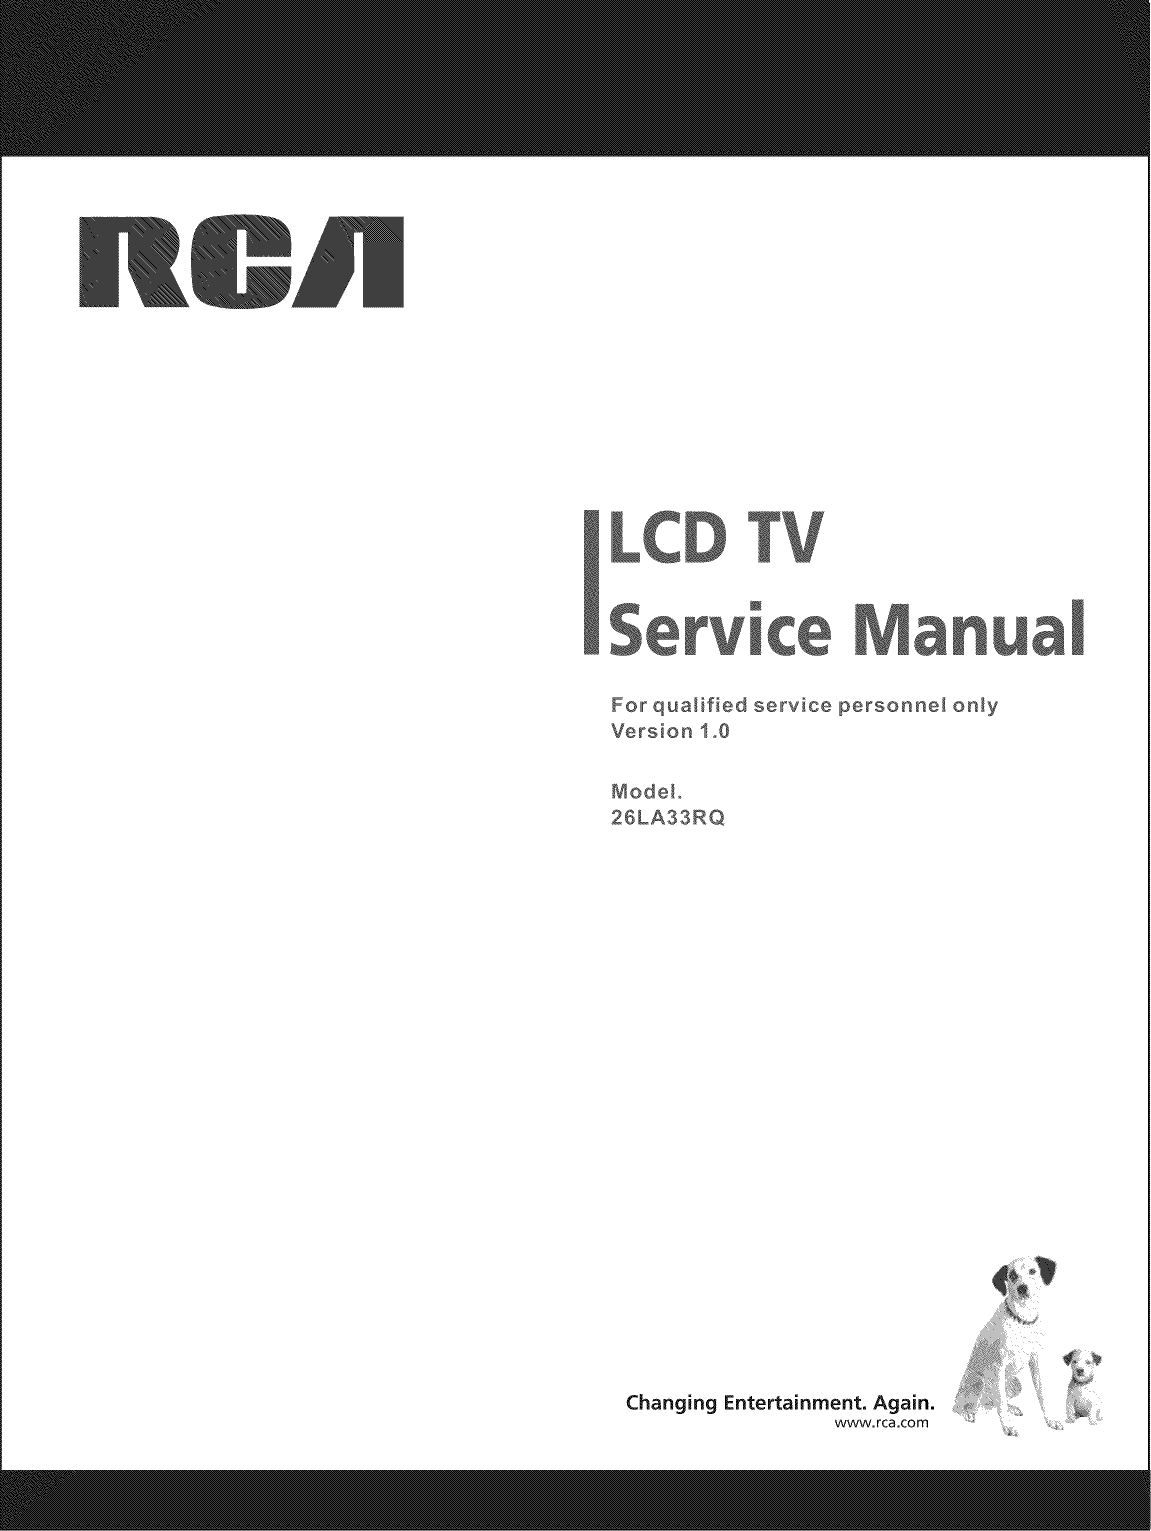 RCA 26LA30RQ User Manual LCD TELEVISION Manuals And Guides